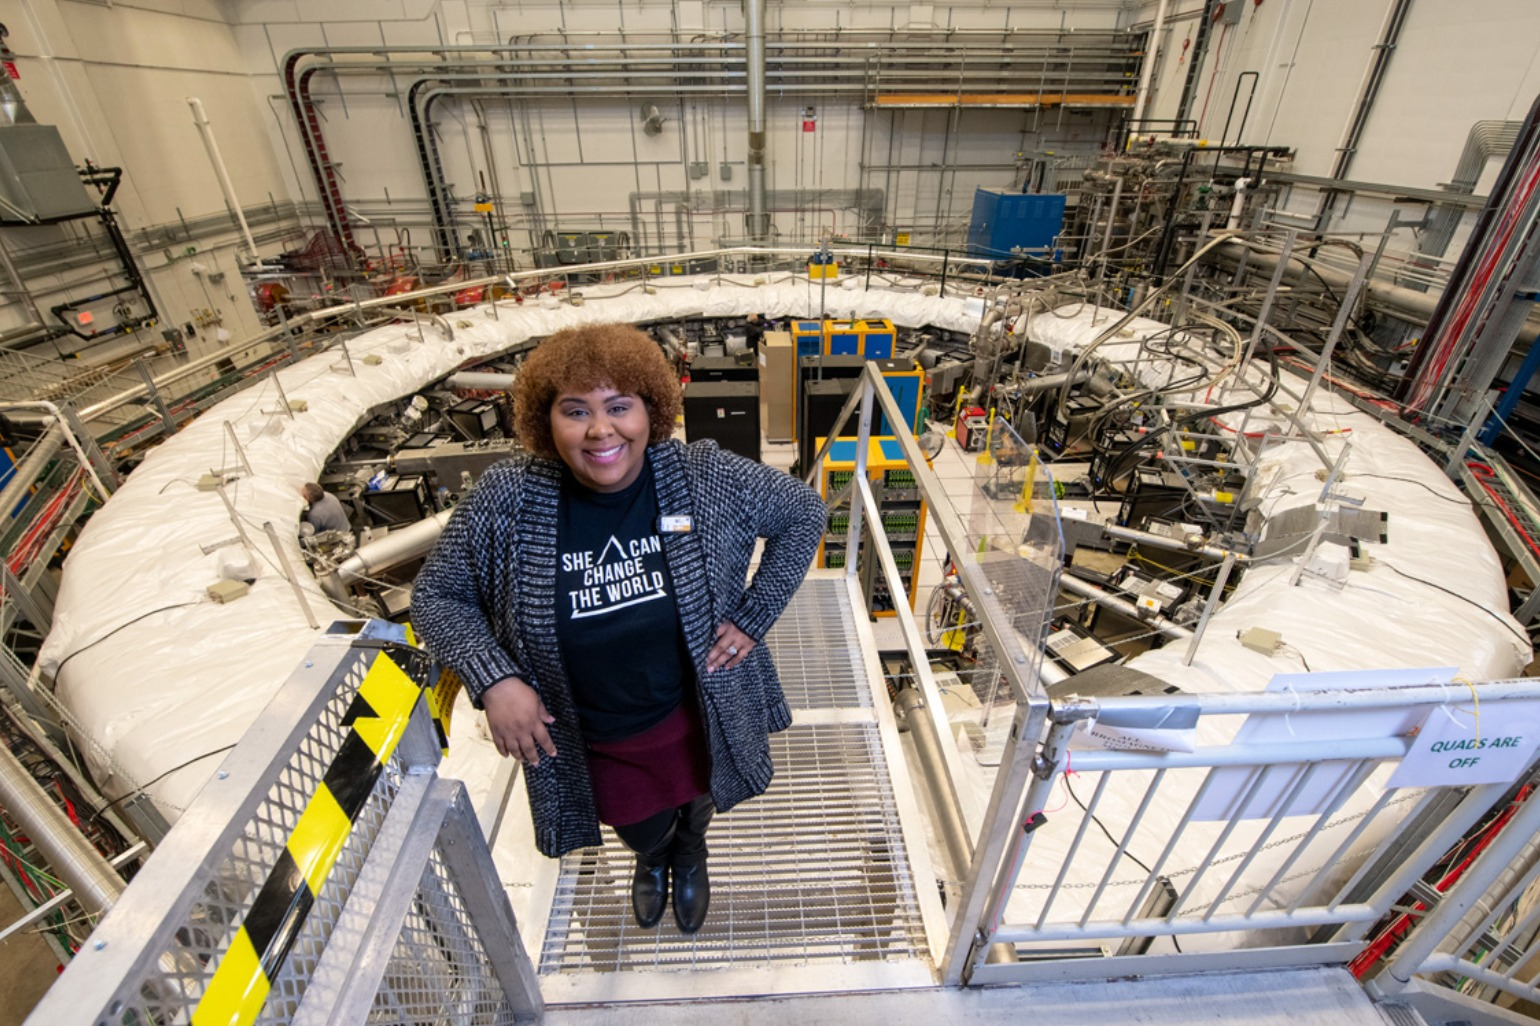 Dr. Jessica Esquivel pictured at the Fermi National Accelerator Laboratory (Fermilab).